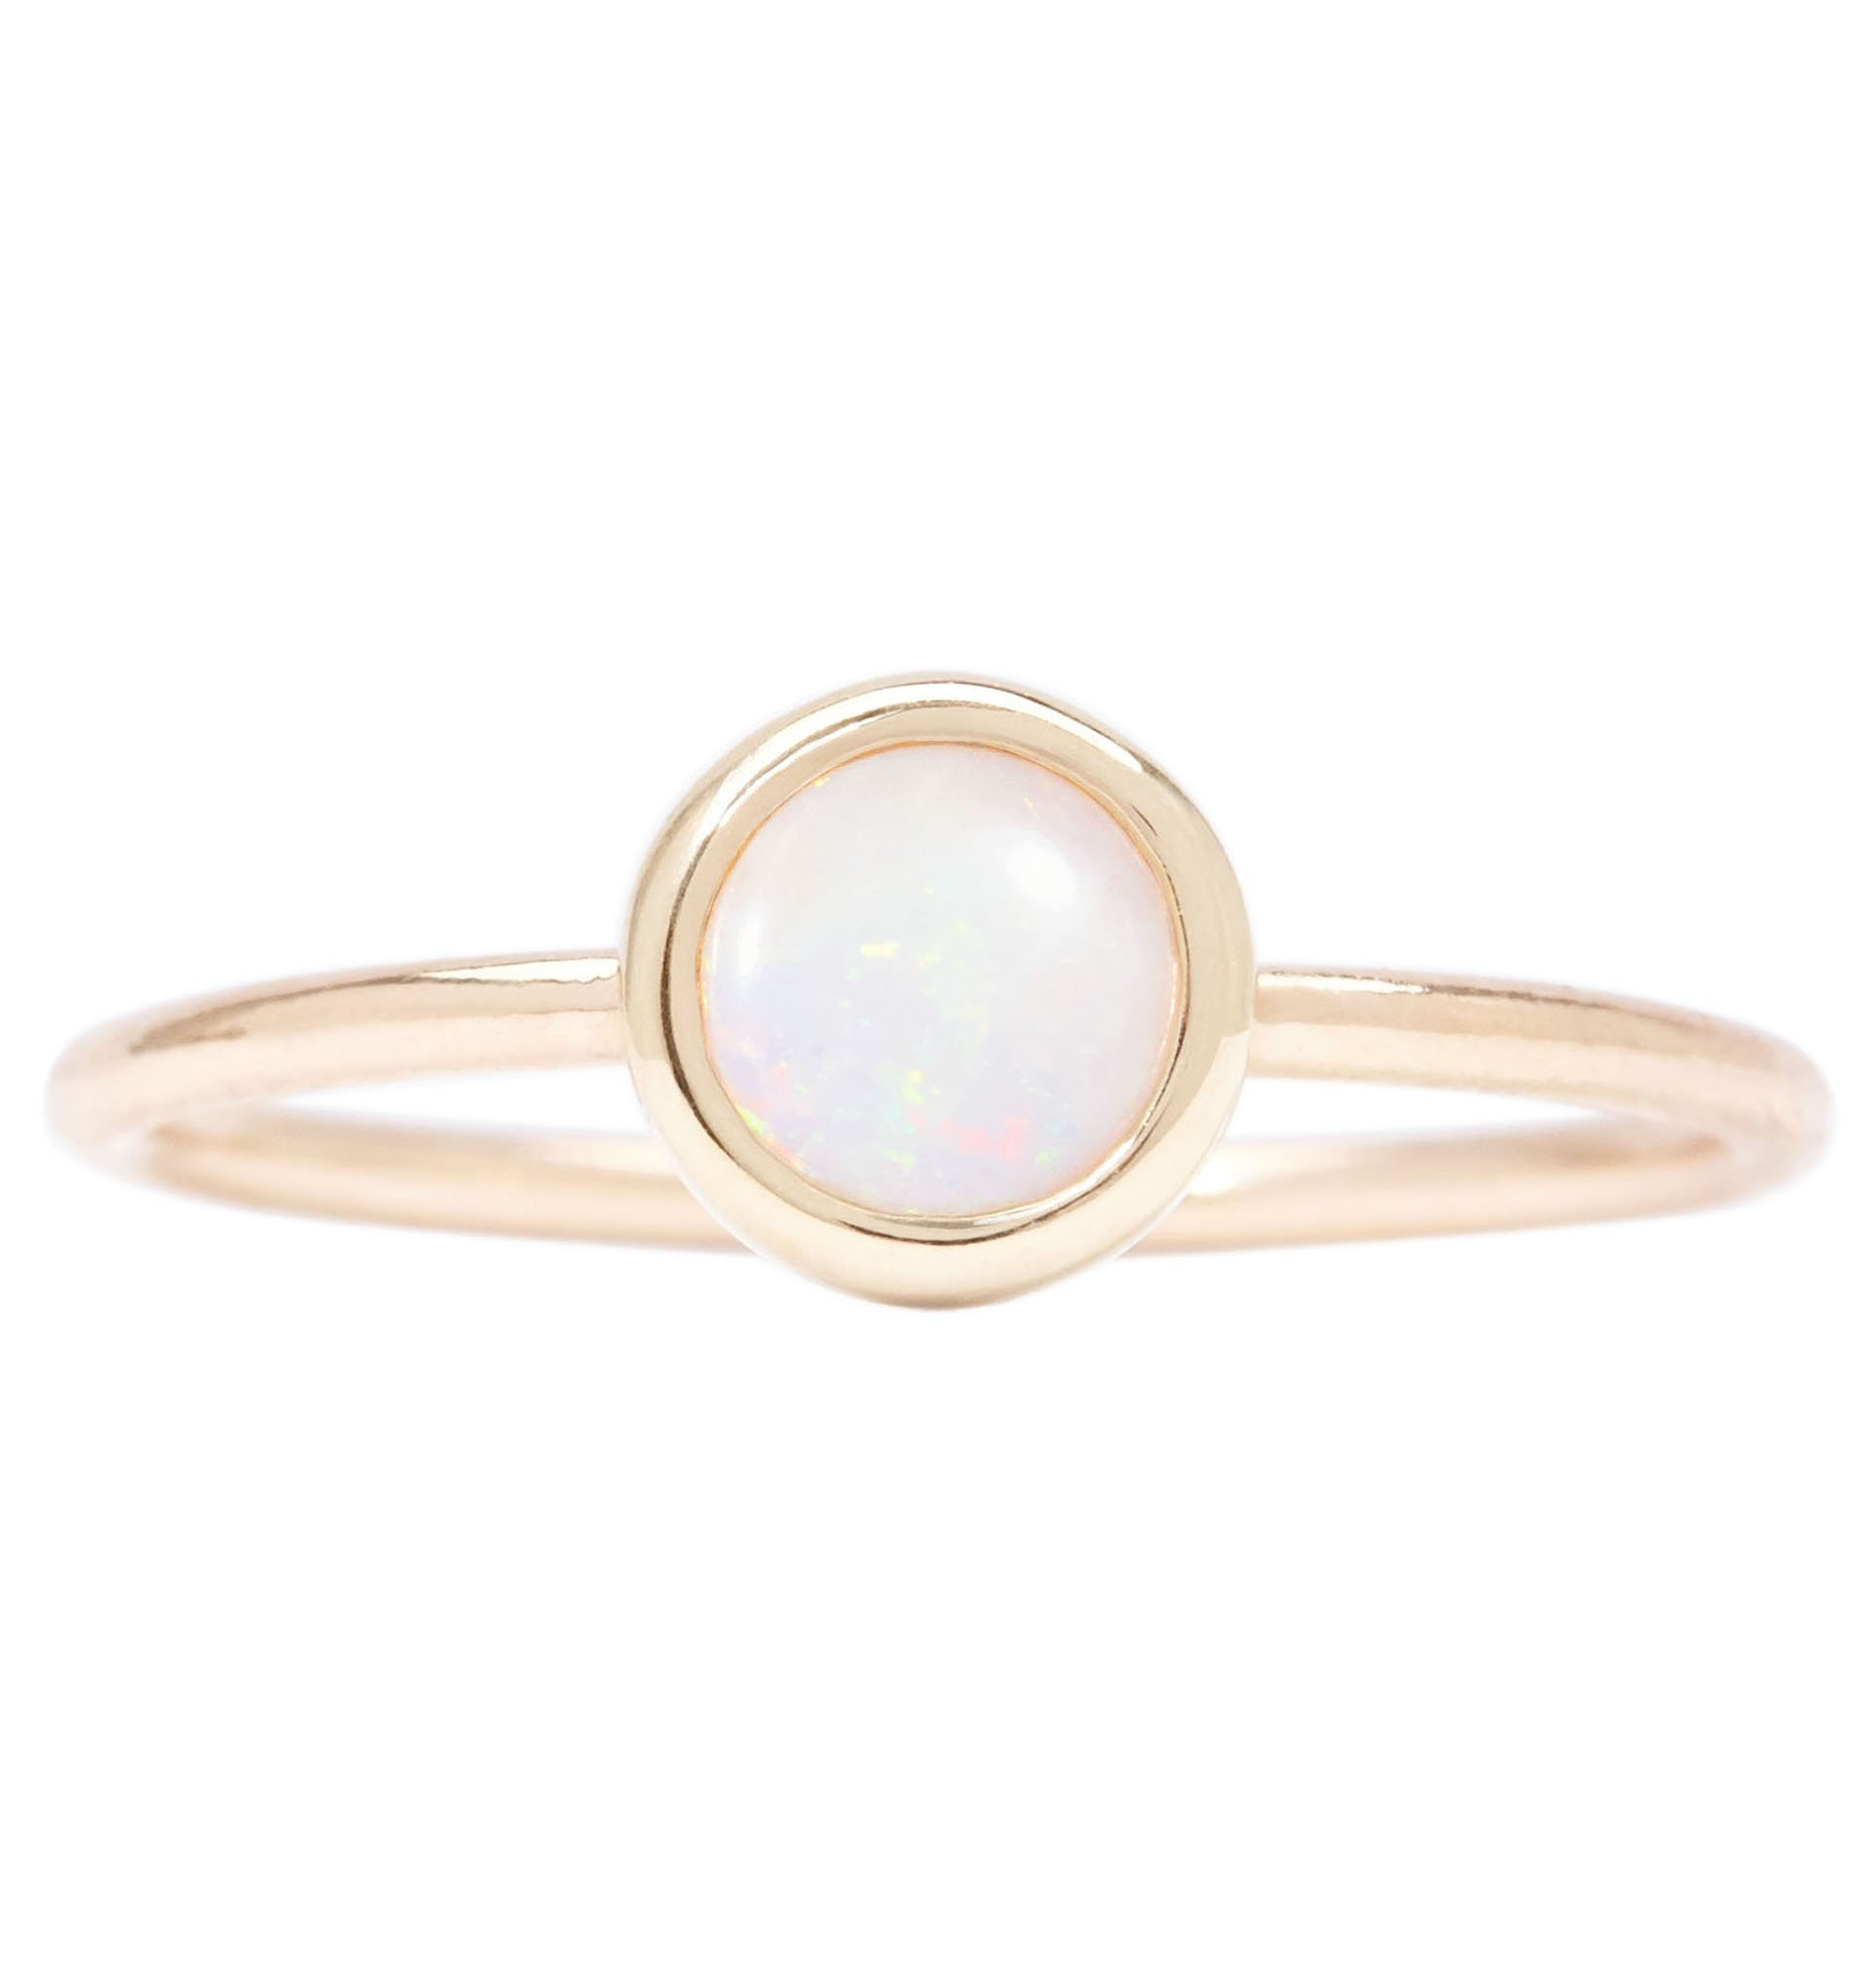 Gemstone Stacking Ring With Opal